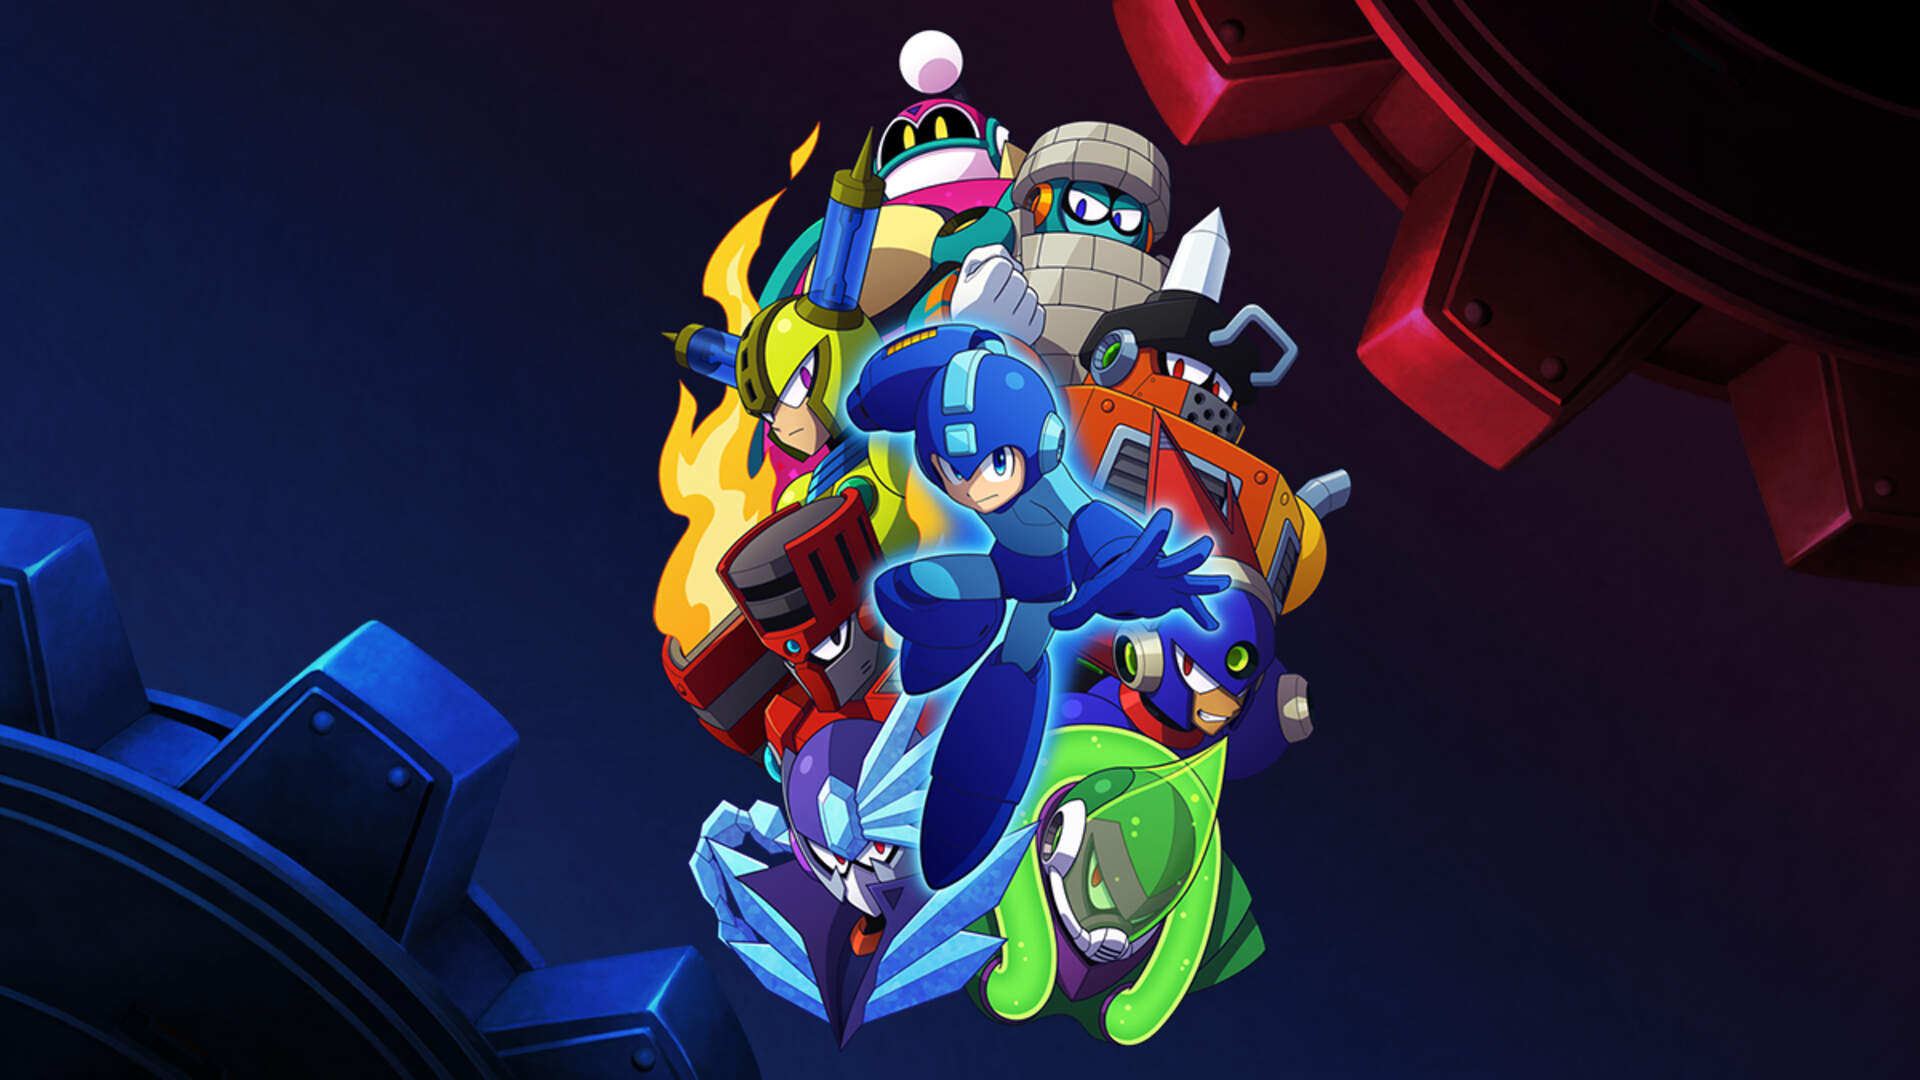 Mega Man 11 is One of the Most Successful Games in Series History